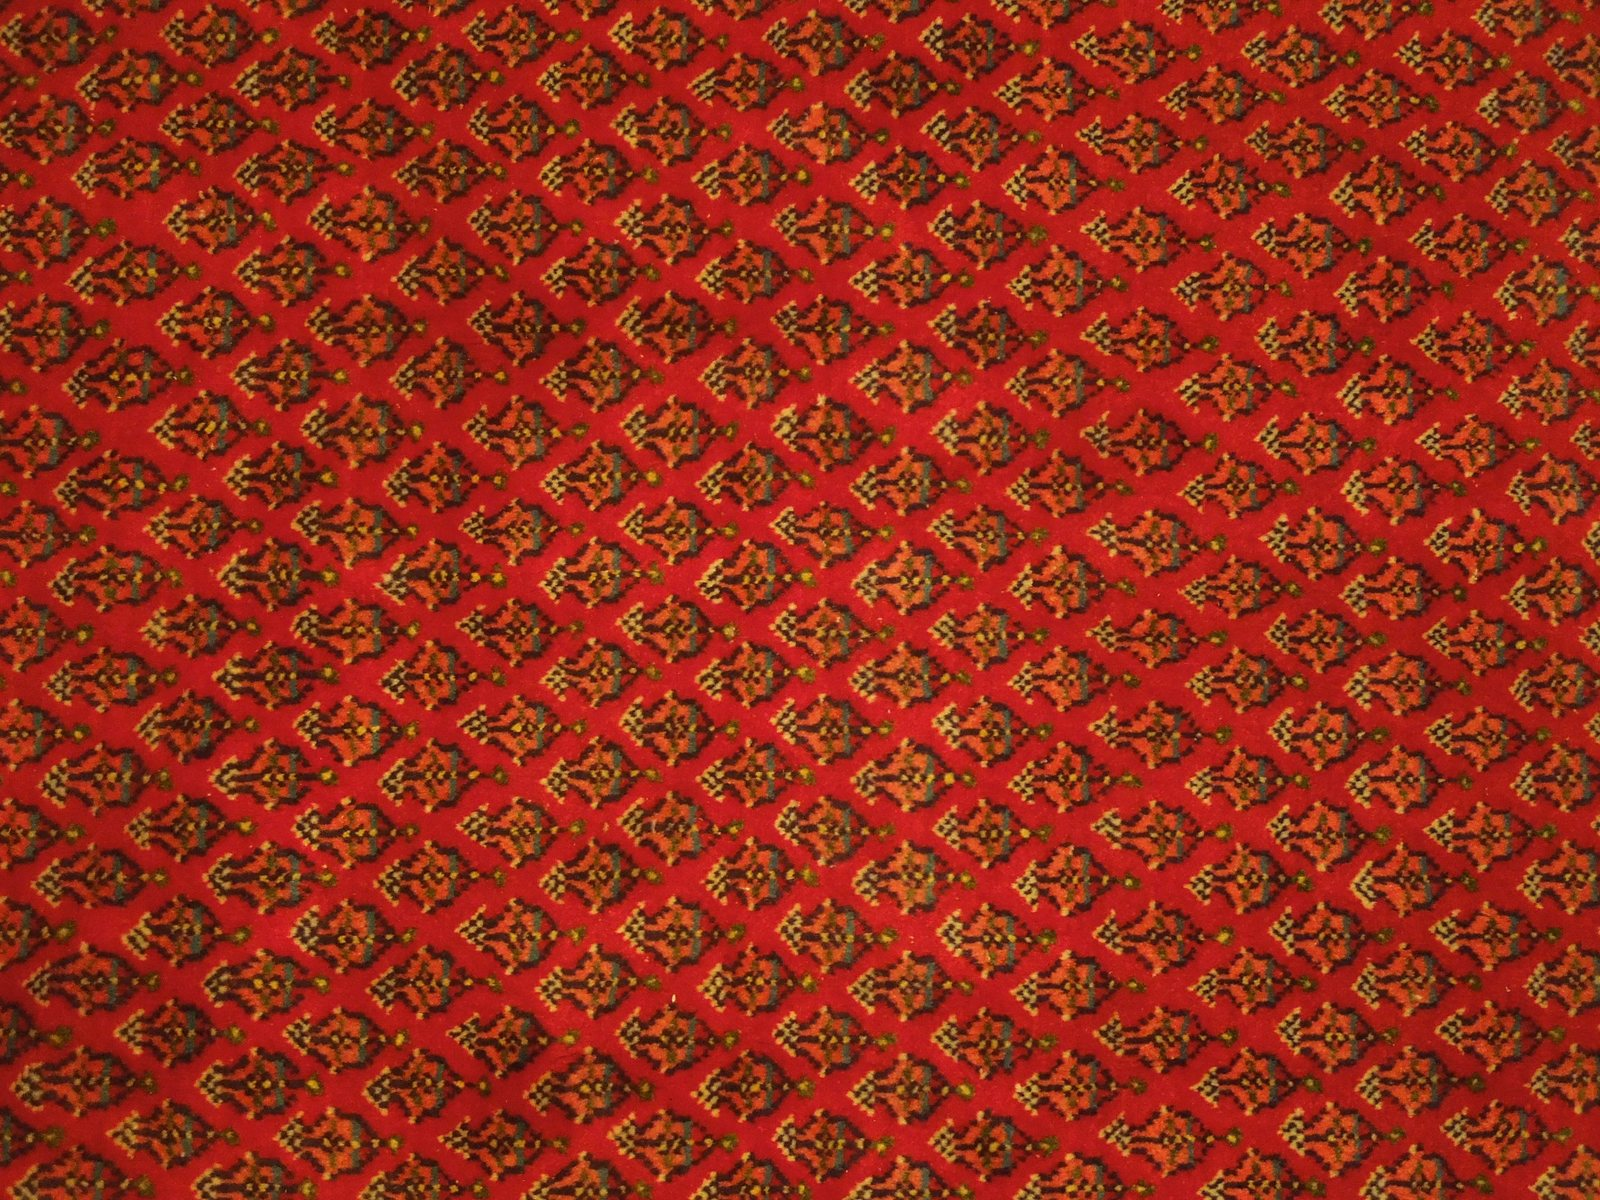 Vivid Boteh Flamed All-Over Persian Hand-Knotted 7x10 Red Mir Wool Area Rug image 6